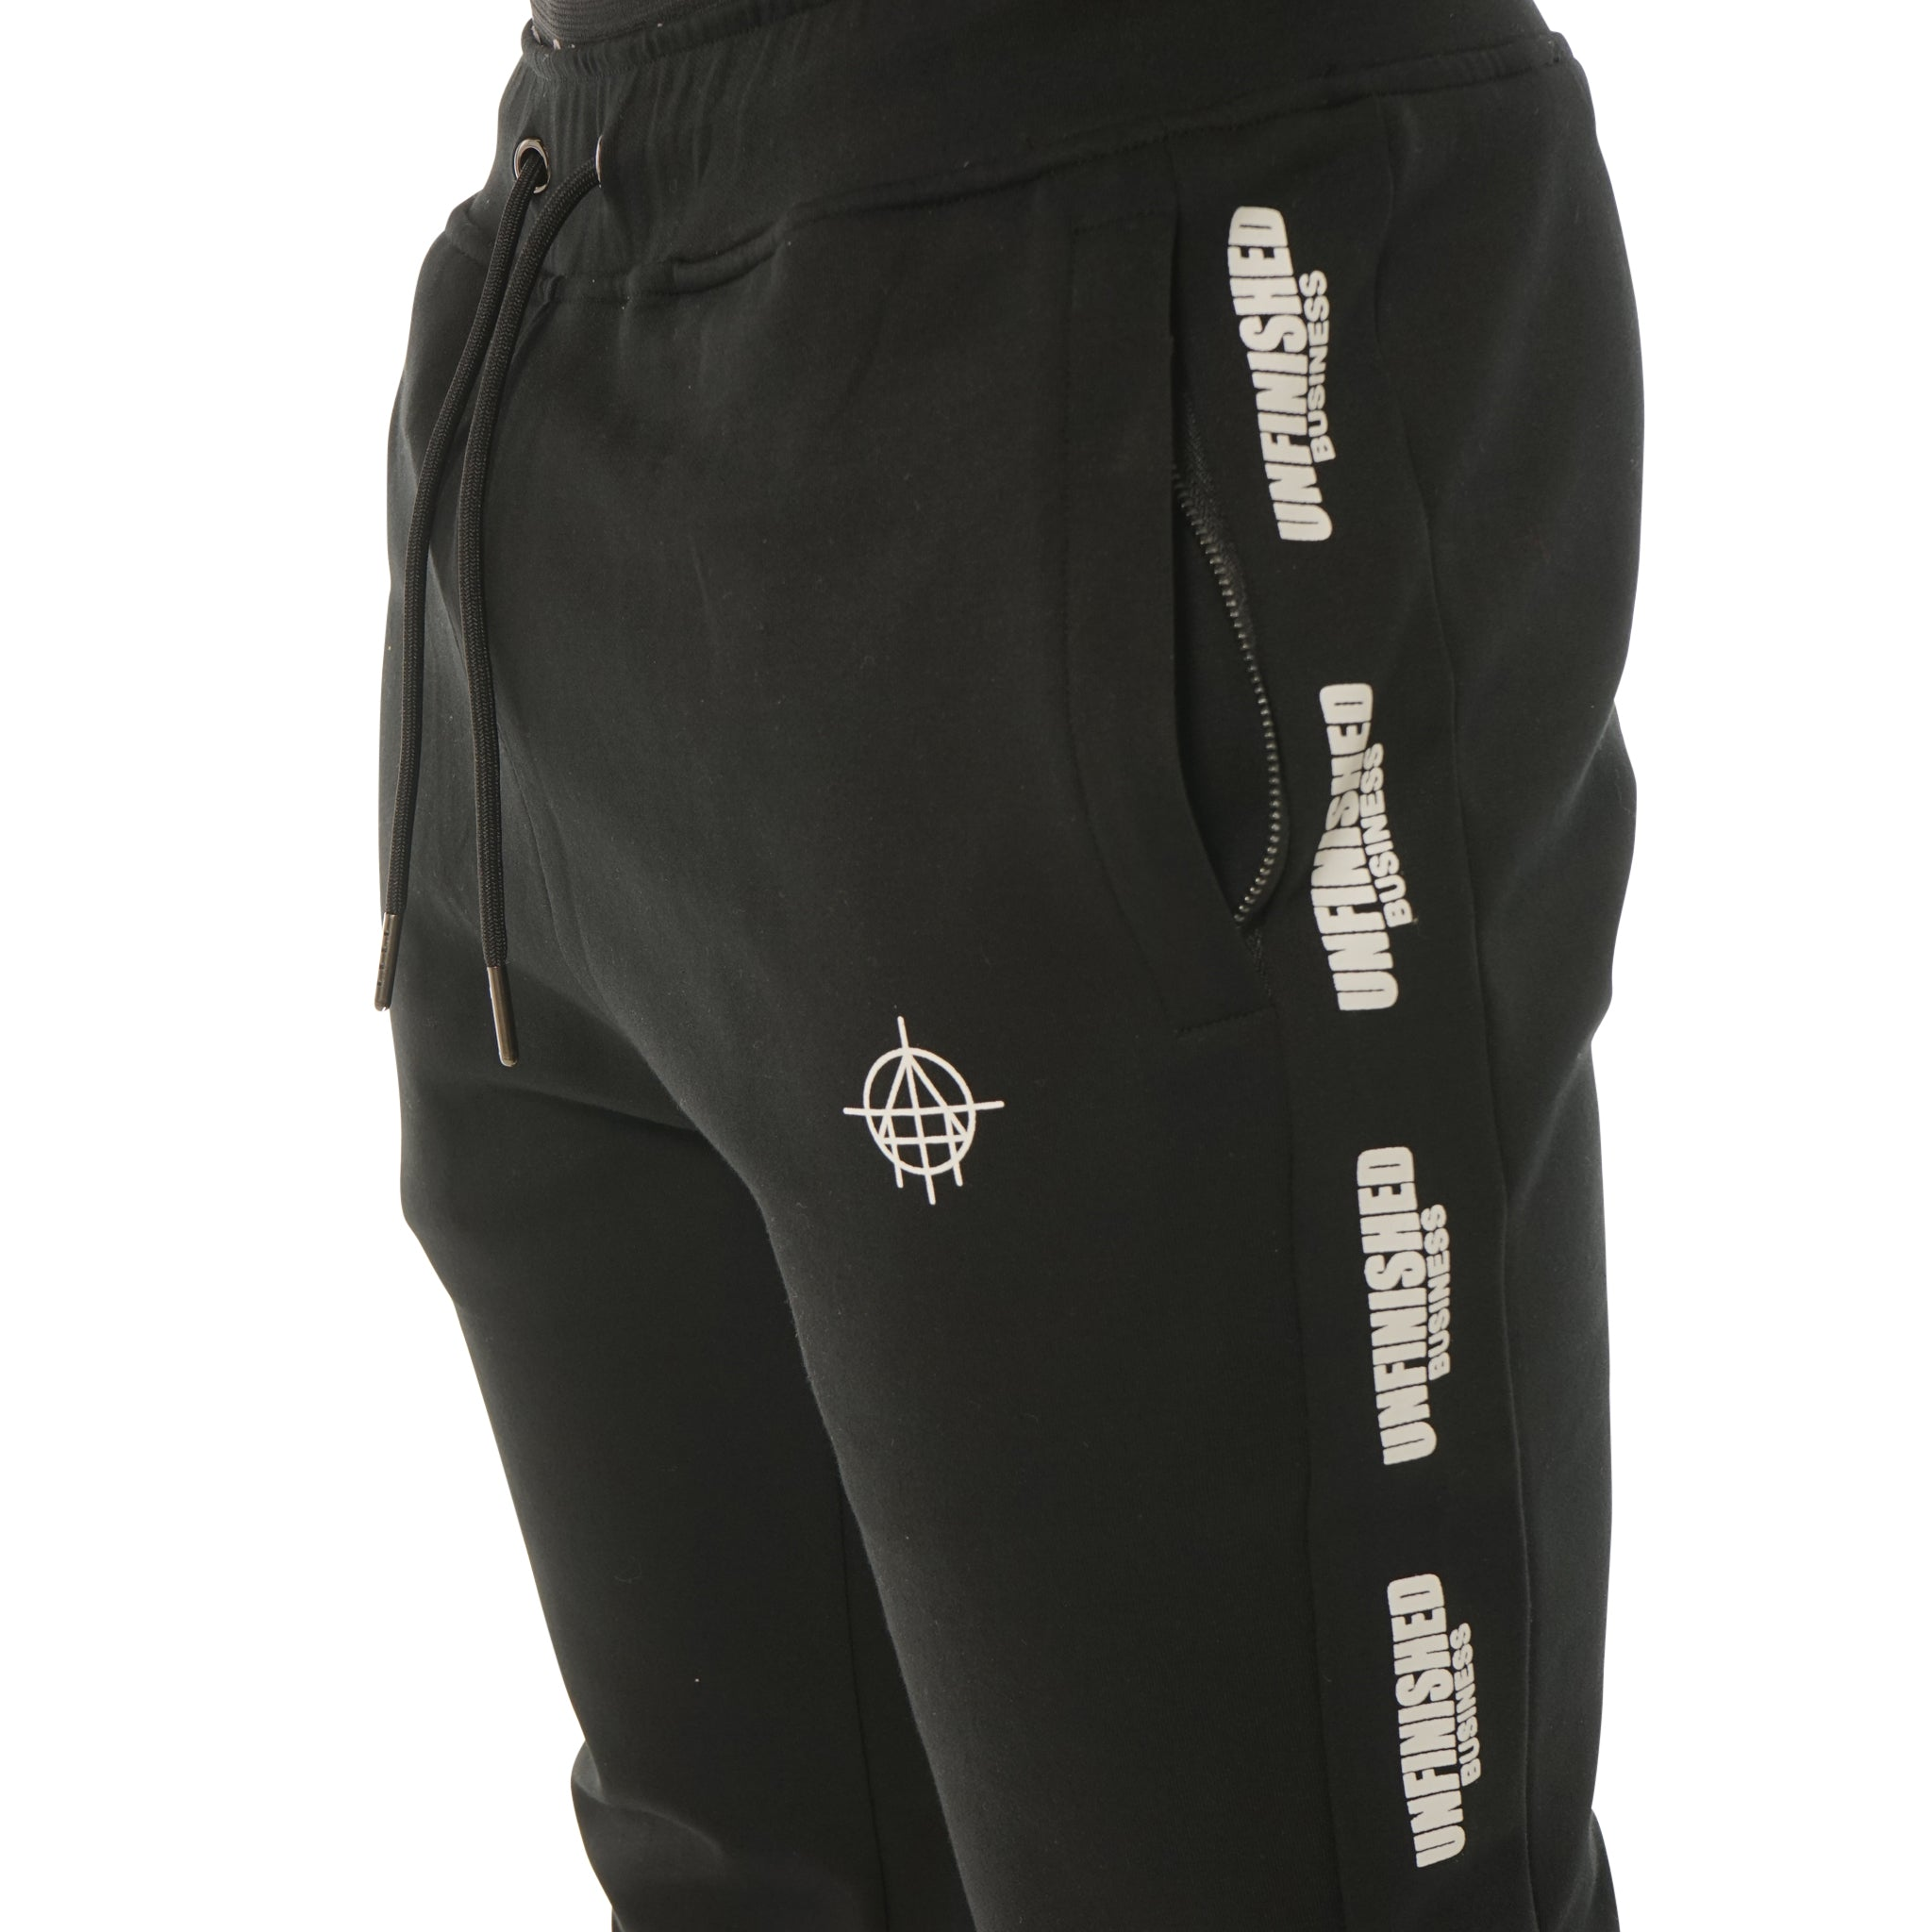 SHADOW TRACKSUIT BOTTOMS